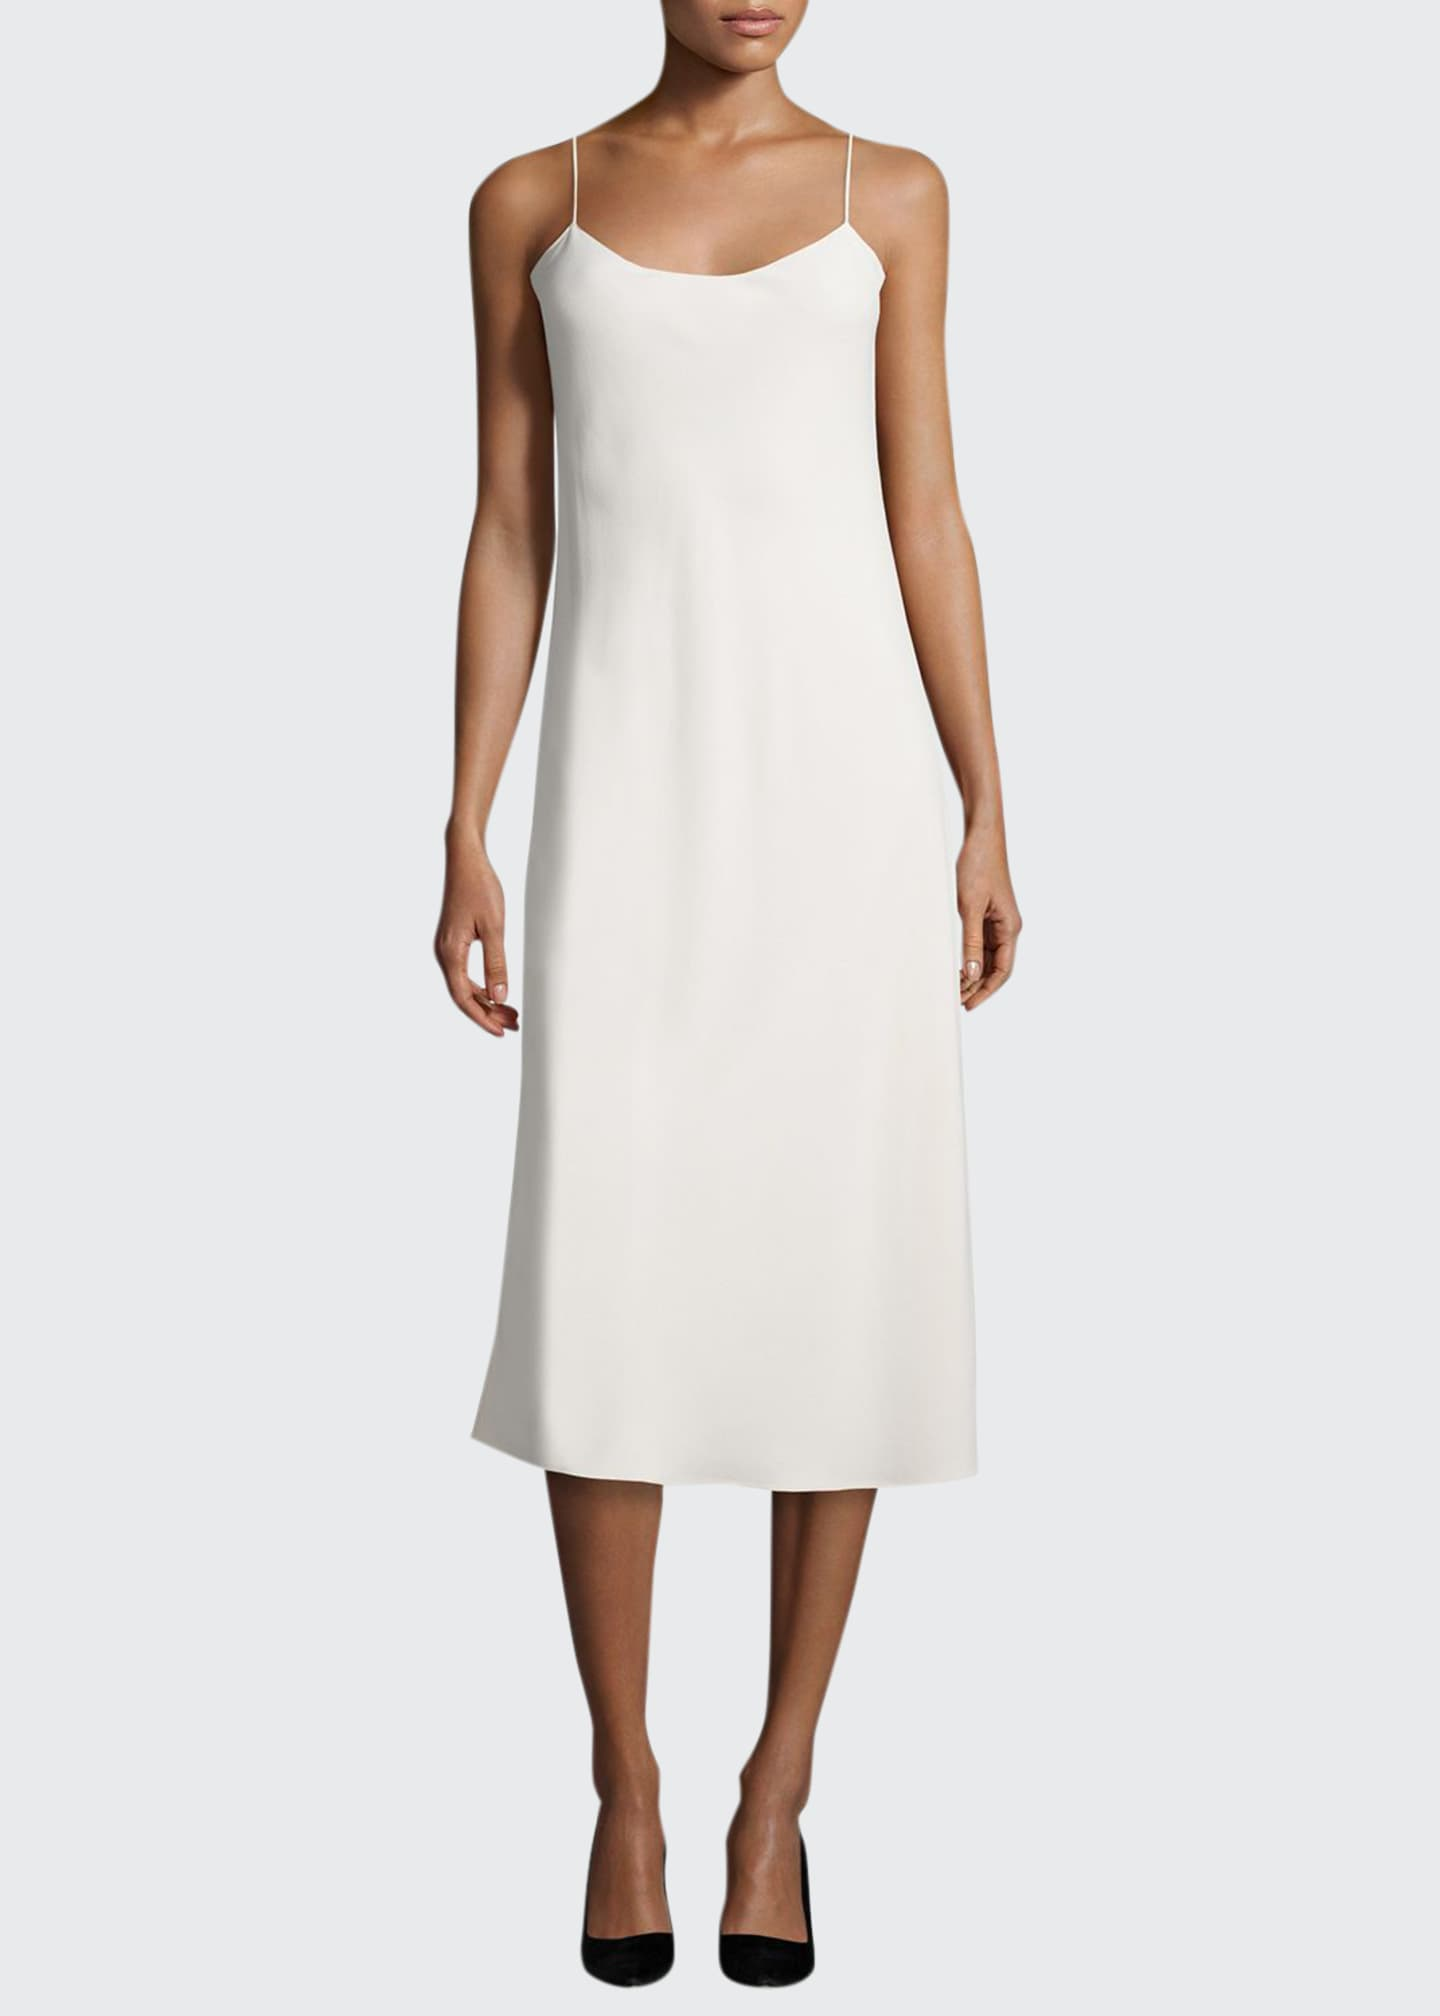 Image 1 of 2: Gibbons Sleeveless Bias-Cut Dress